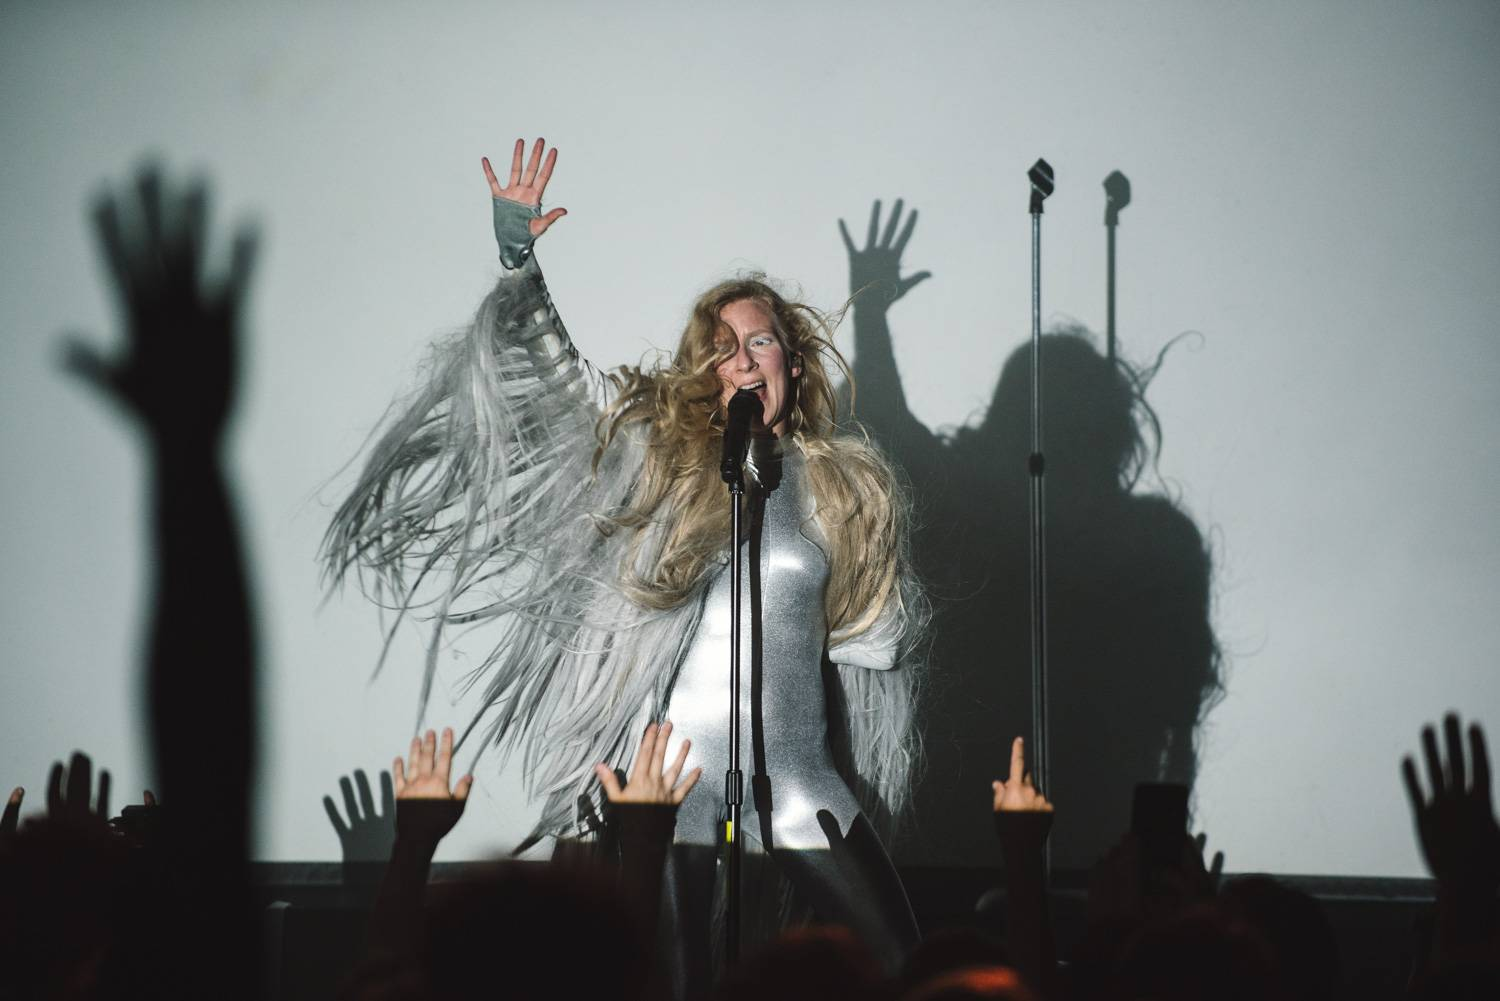 ionnalee | iamamiwhoami at the Venue, Vancouver, May 4 2019. Pavel Boiko photo.